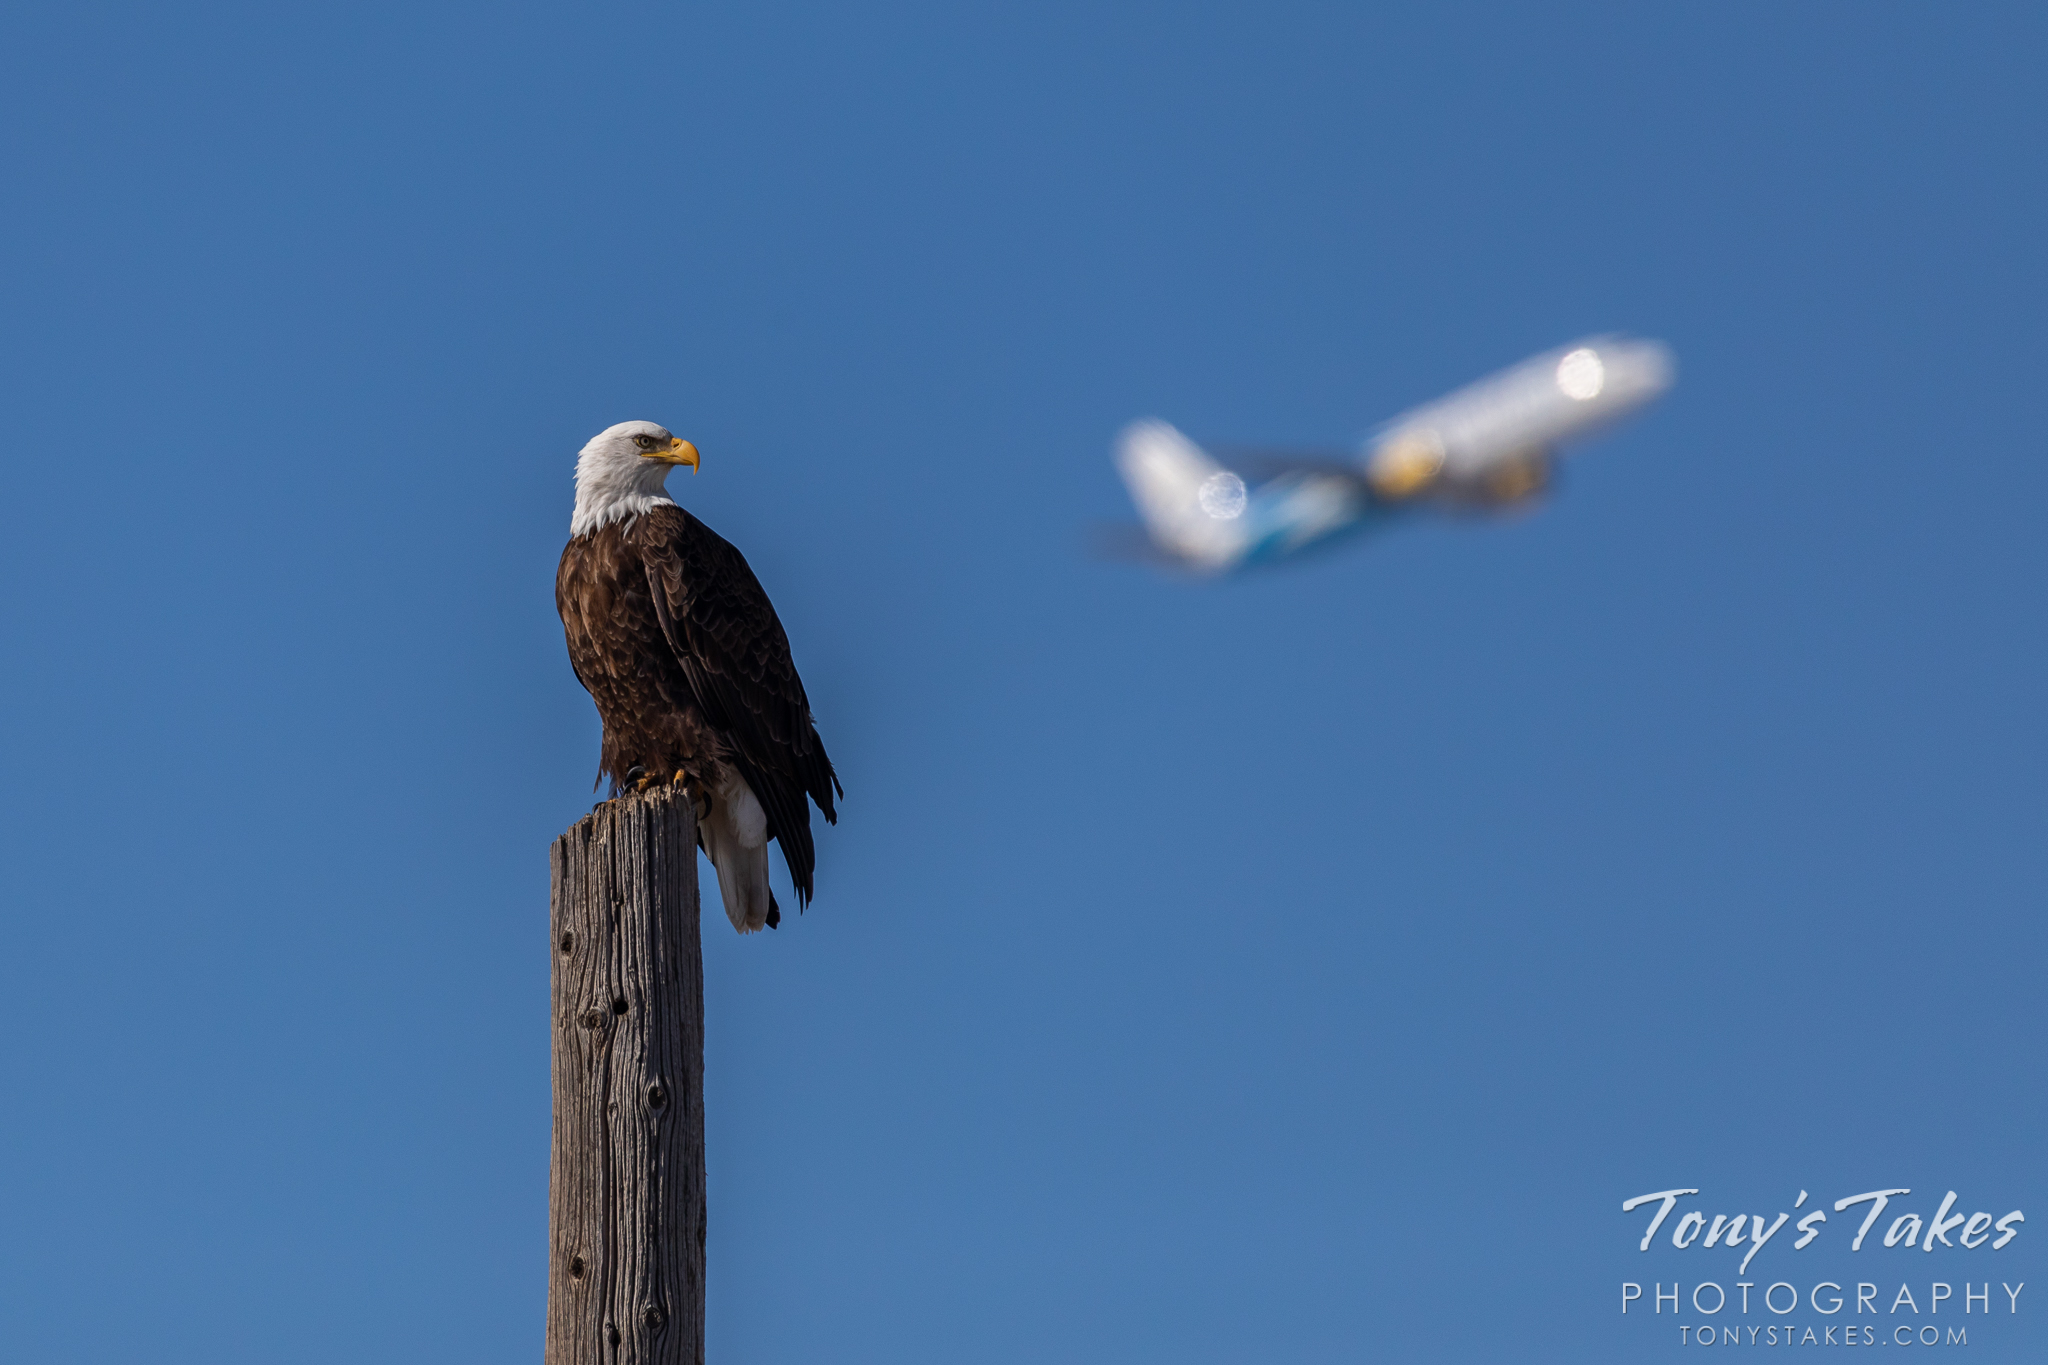 A bald eagle keeps watch near Denver International Airport while an airplane takes off in the background. (© Tony's Takes)